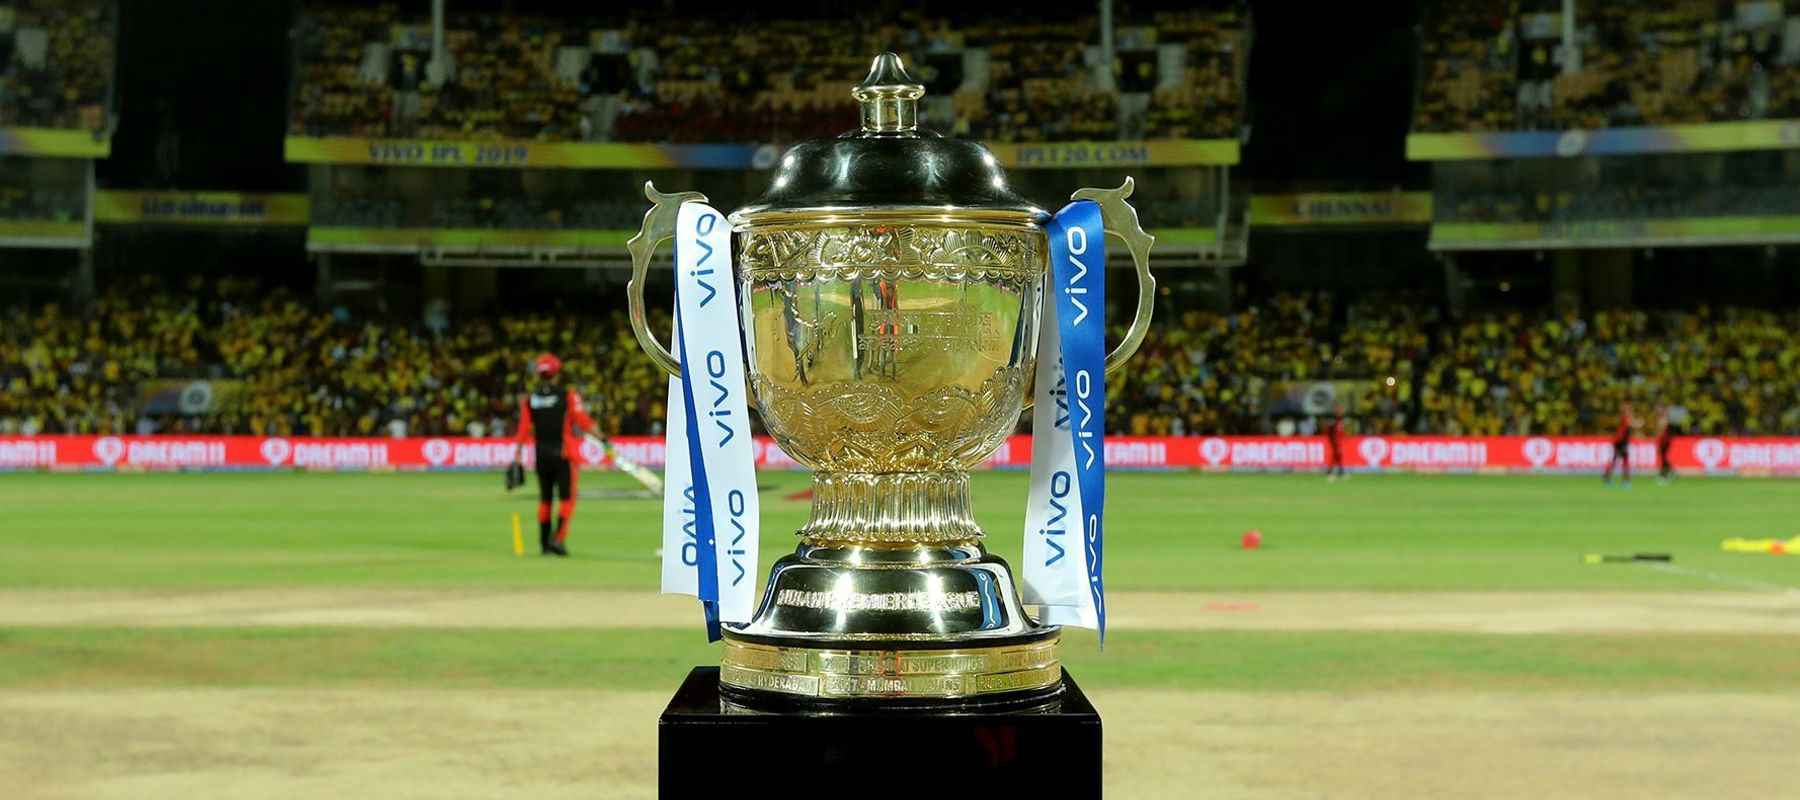 Patanjali planning to bid for the title sponsorship of IPL